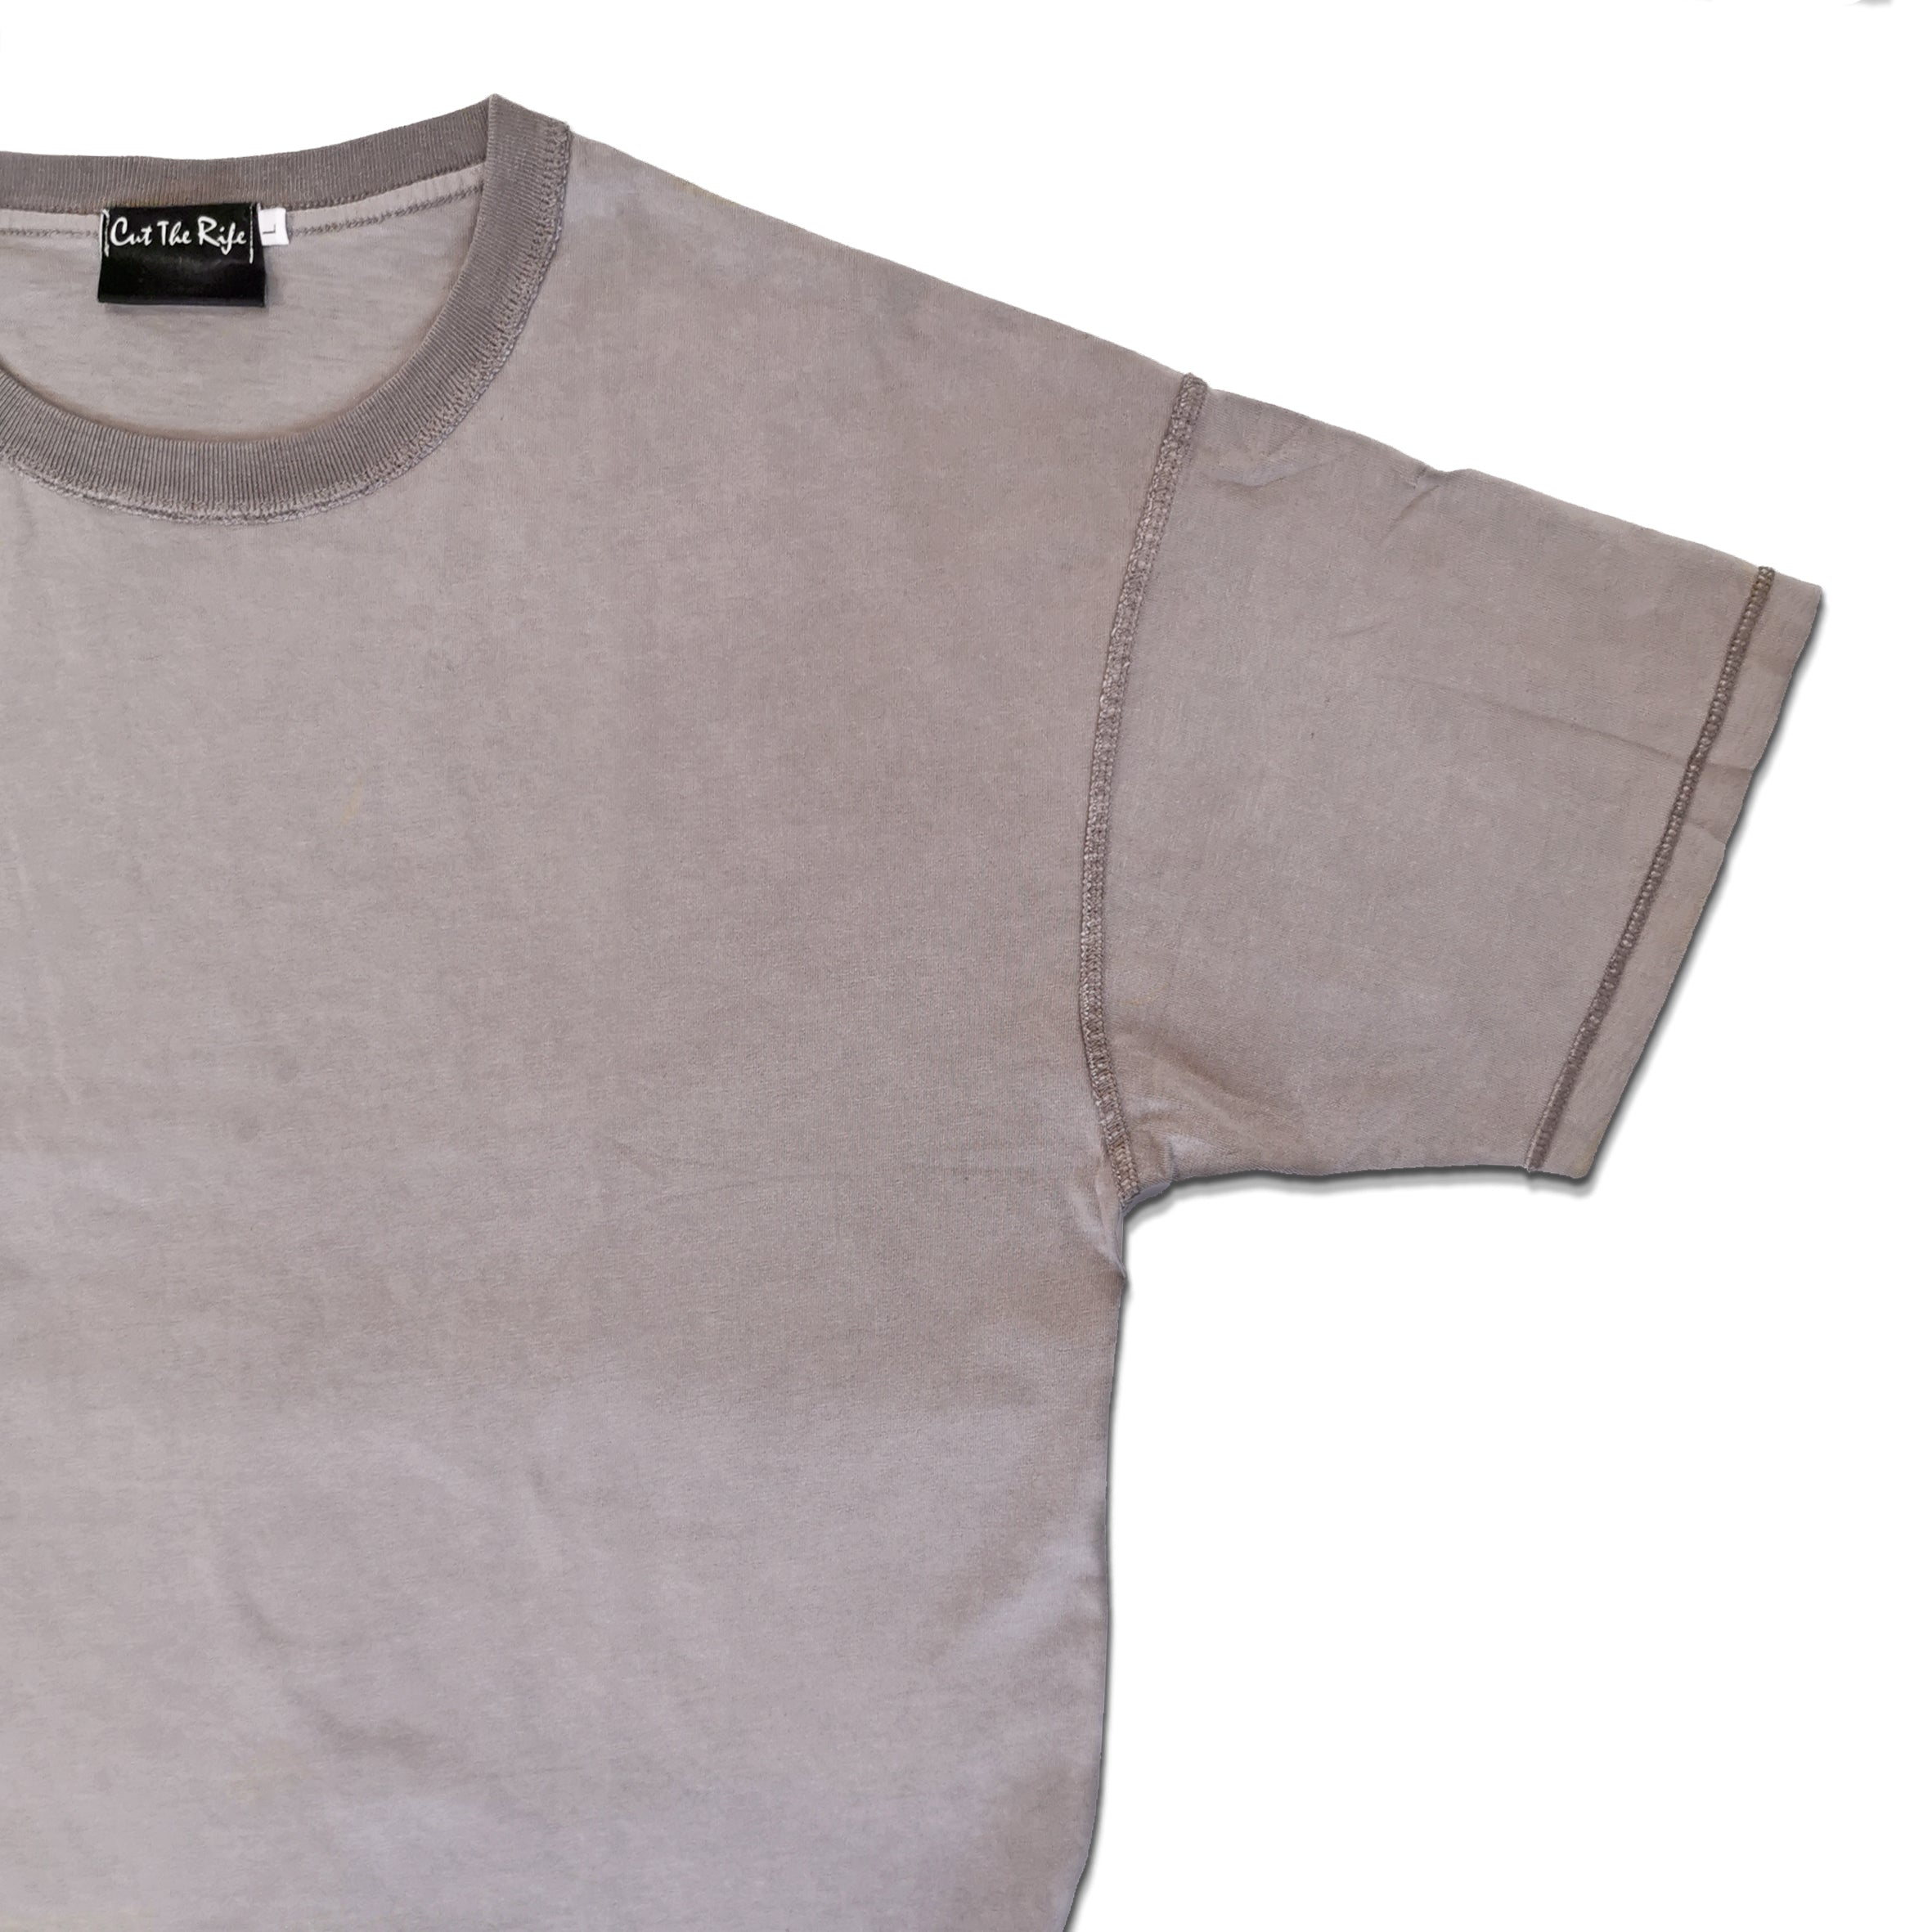 distressed washed grey drop shoulder vintage t-shirt